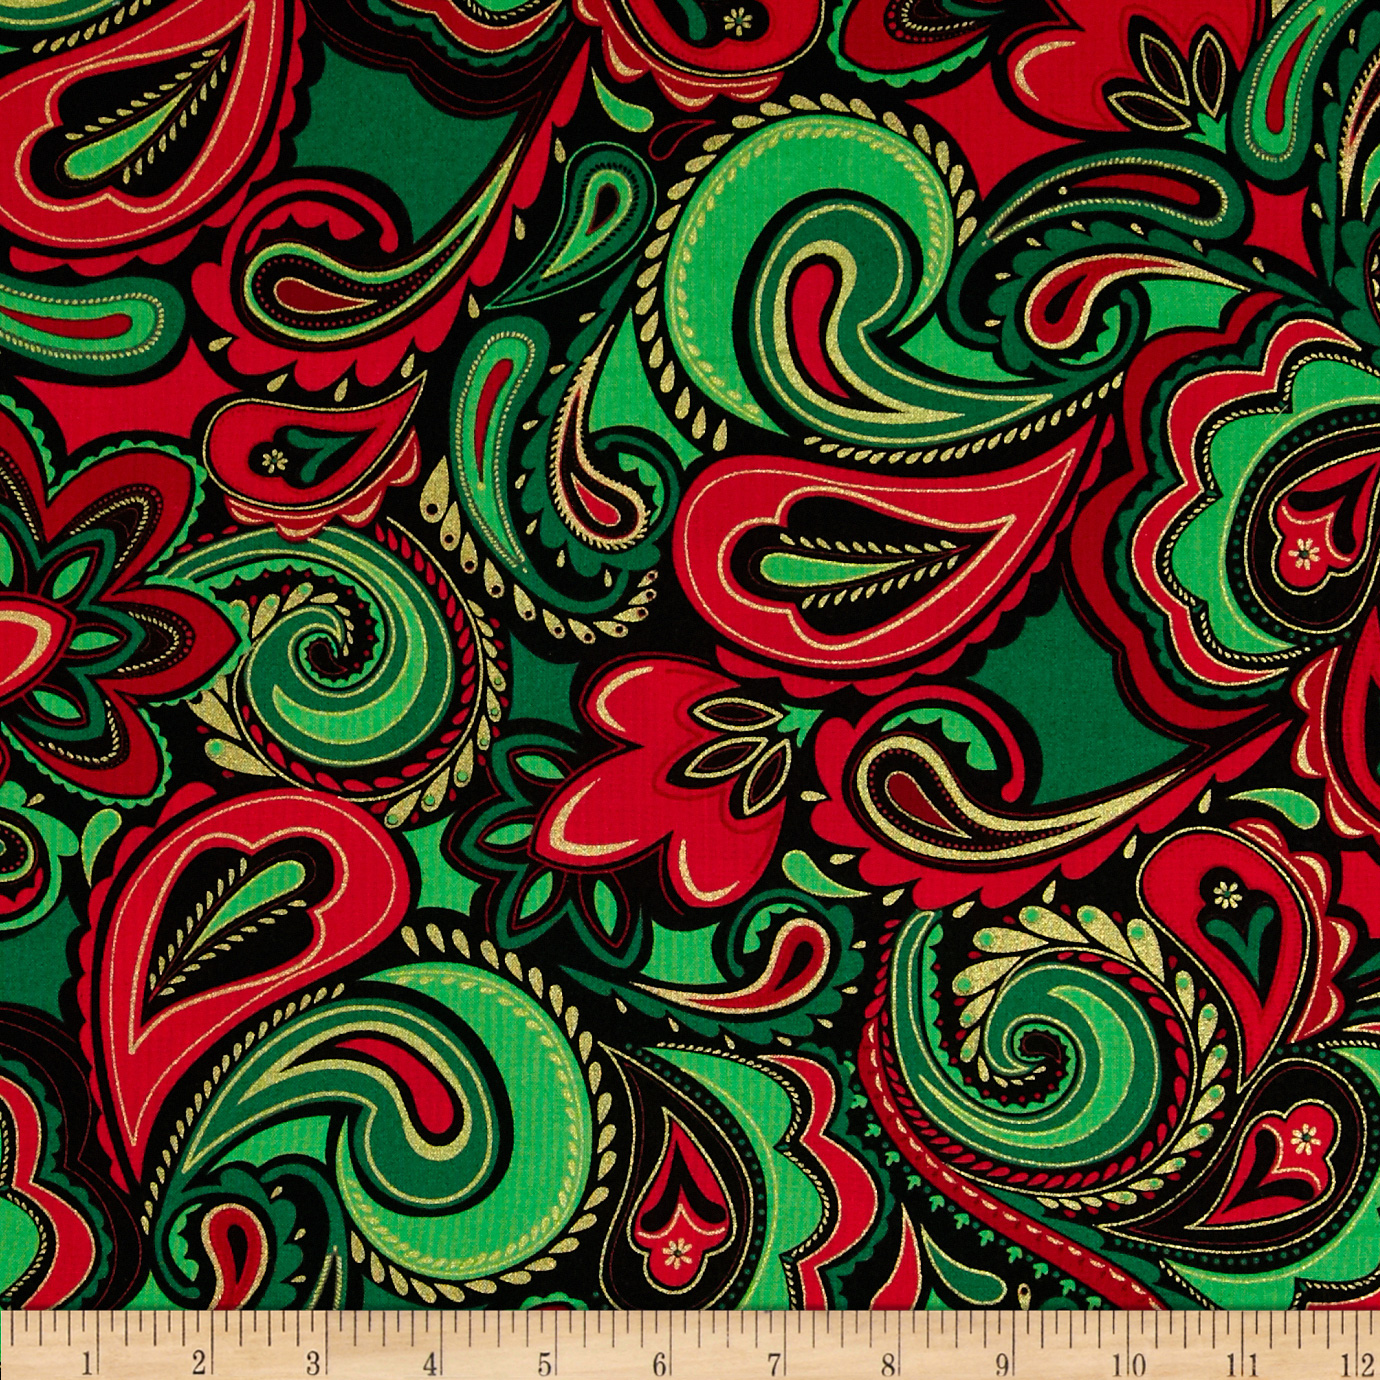 Kanvas Deck the Halls Metallic Holiday Paisley Red/Green